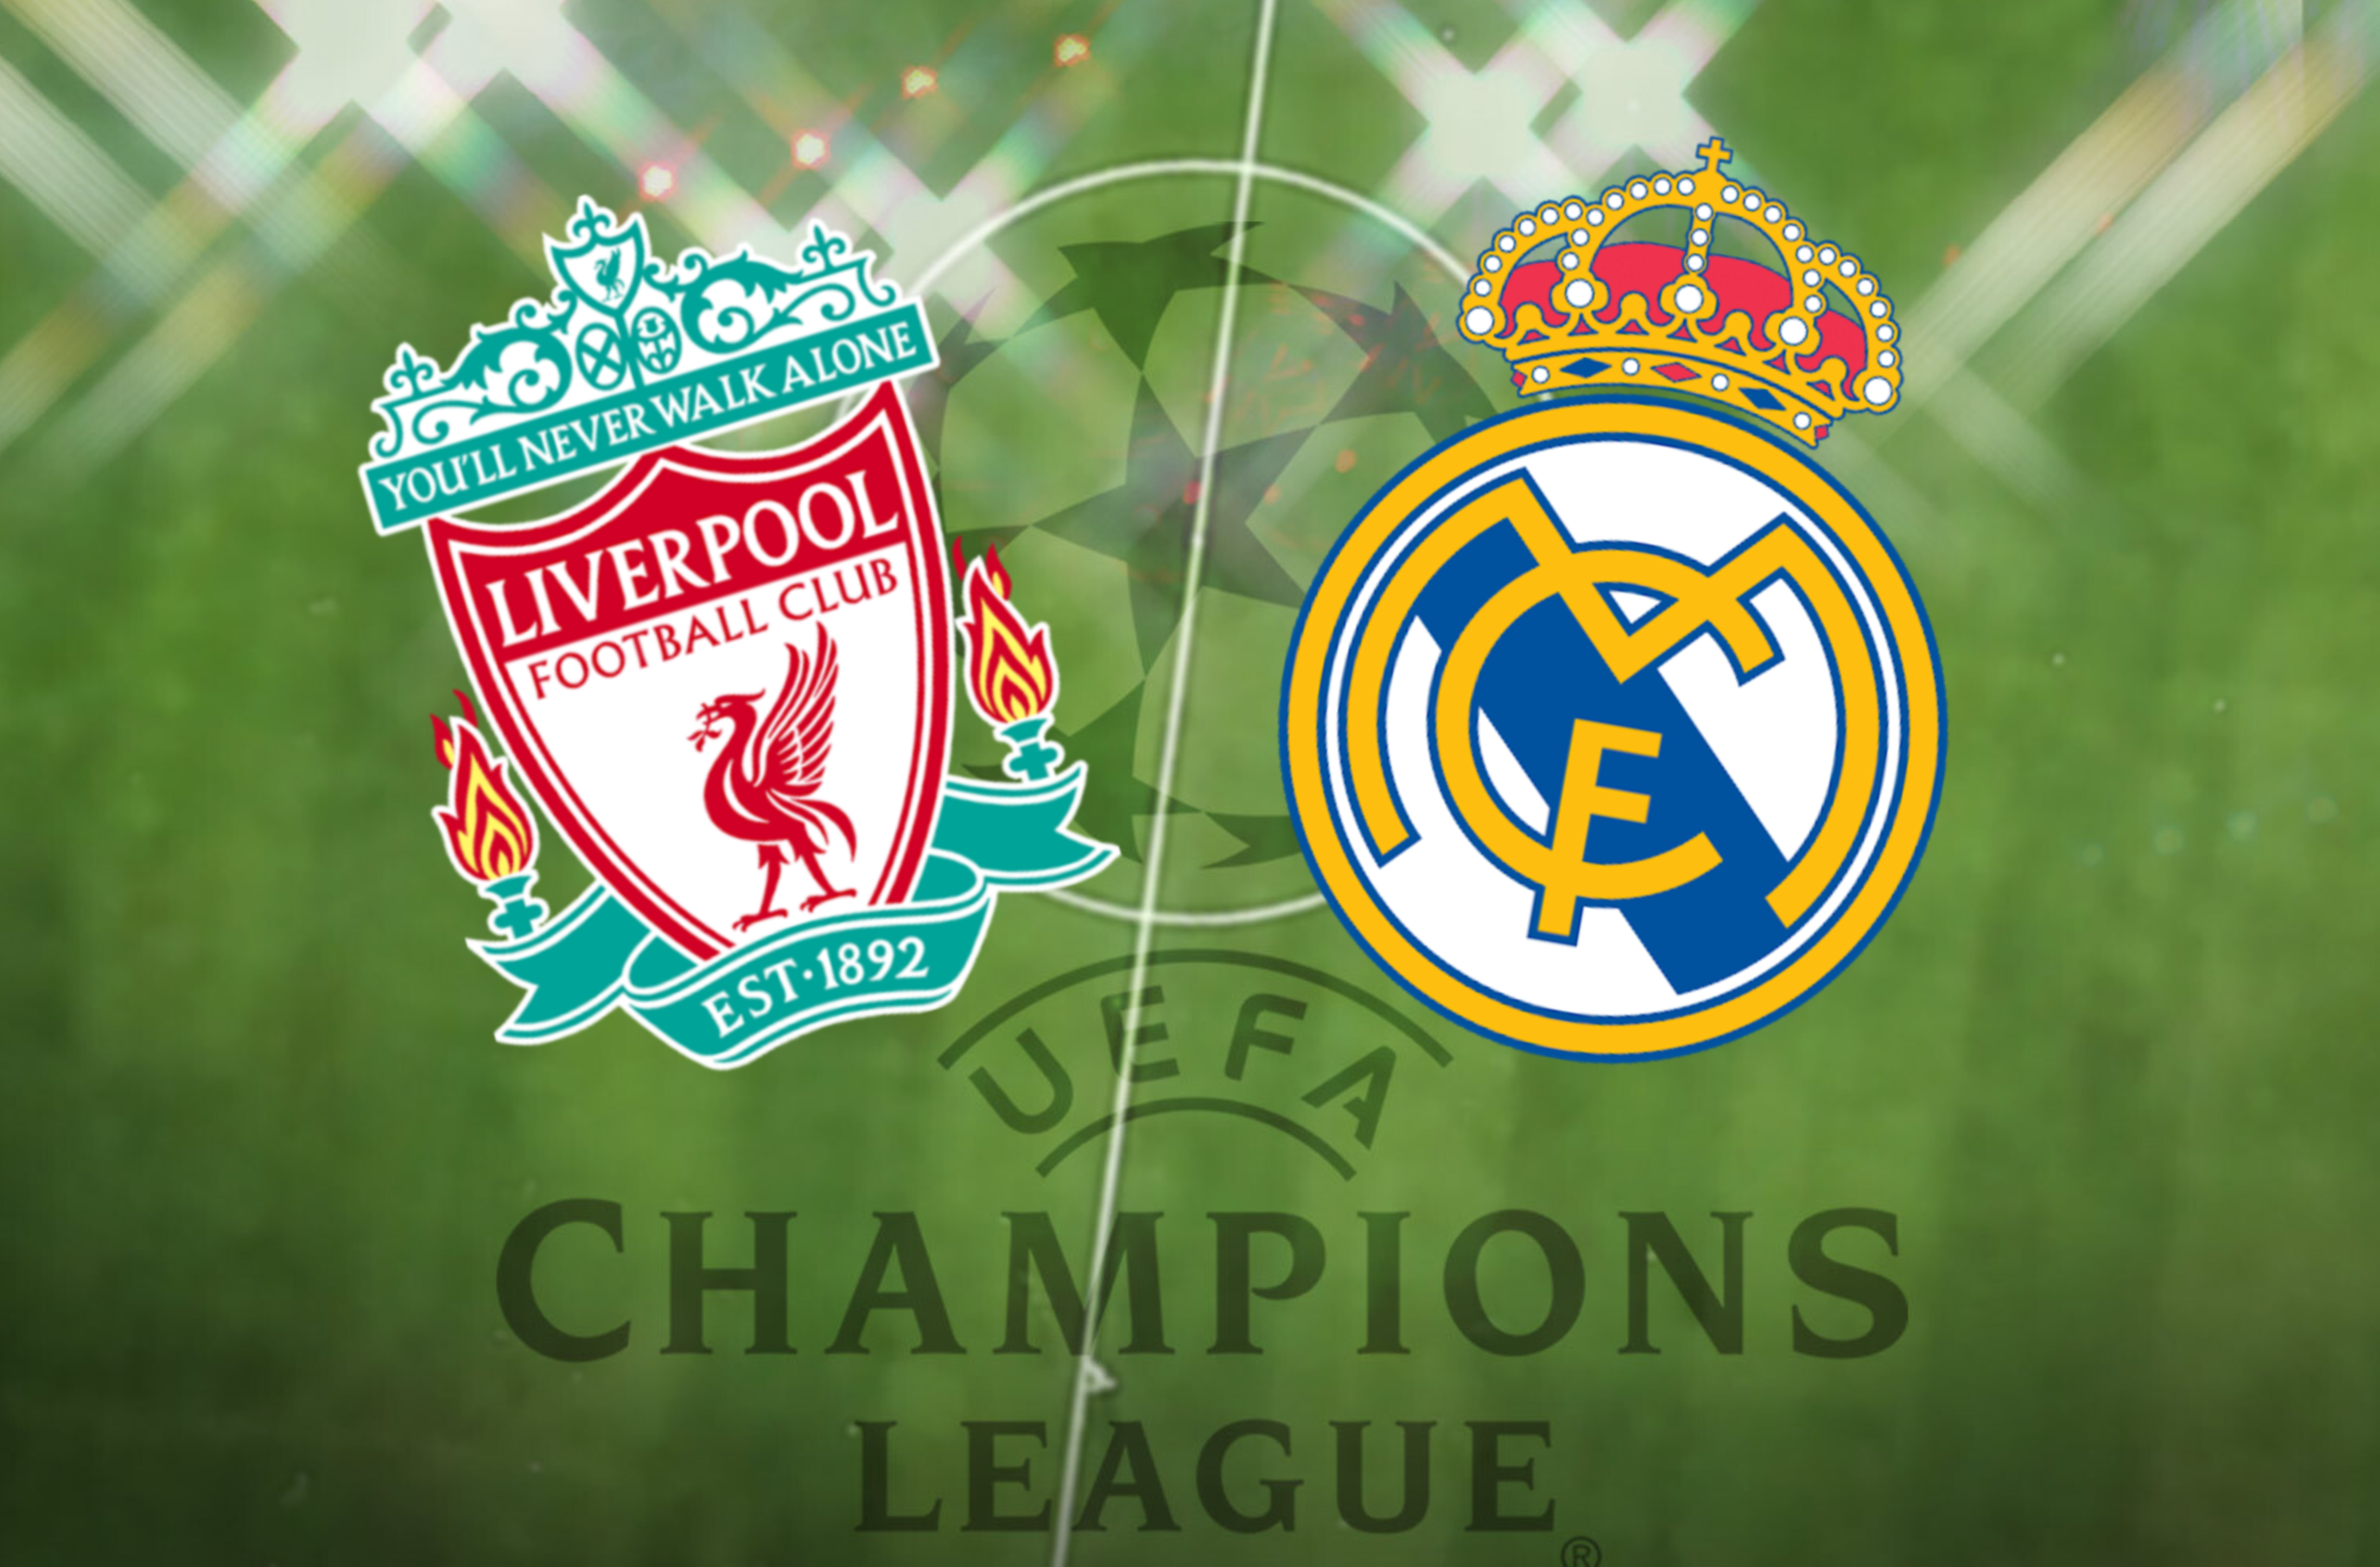 Liverpool FC v Real Madrid: Champions League prediction, TV channel, team news, live stream, h2h results, odds